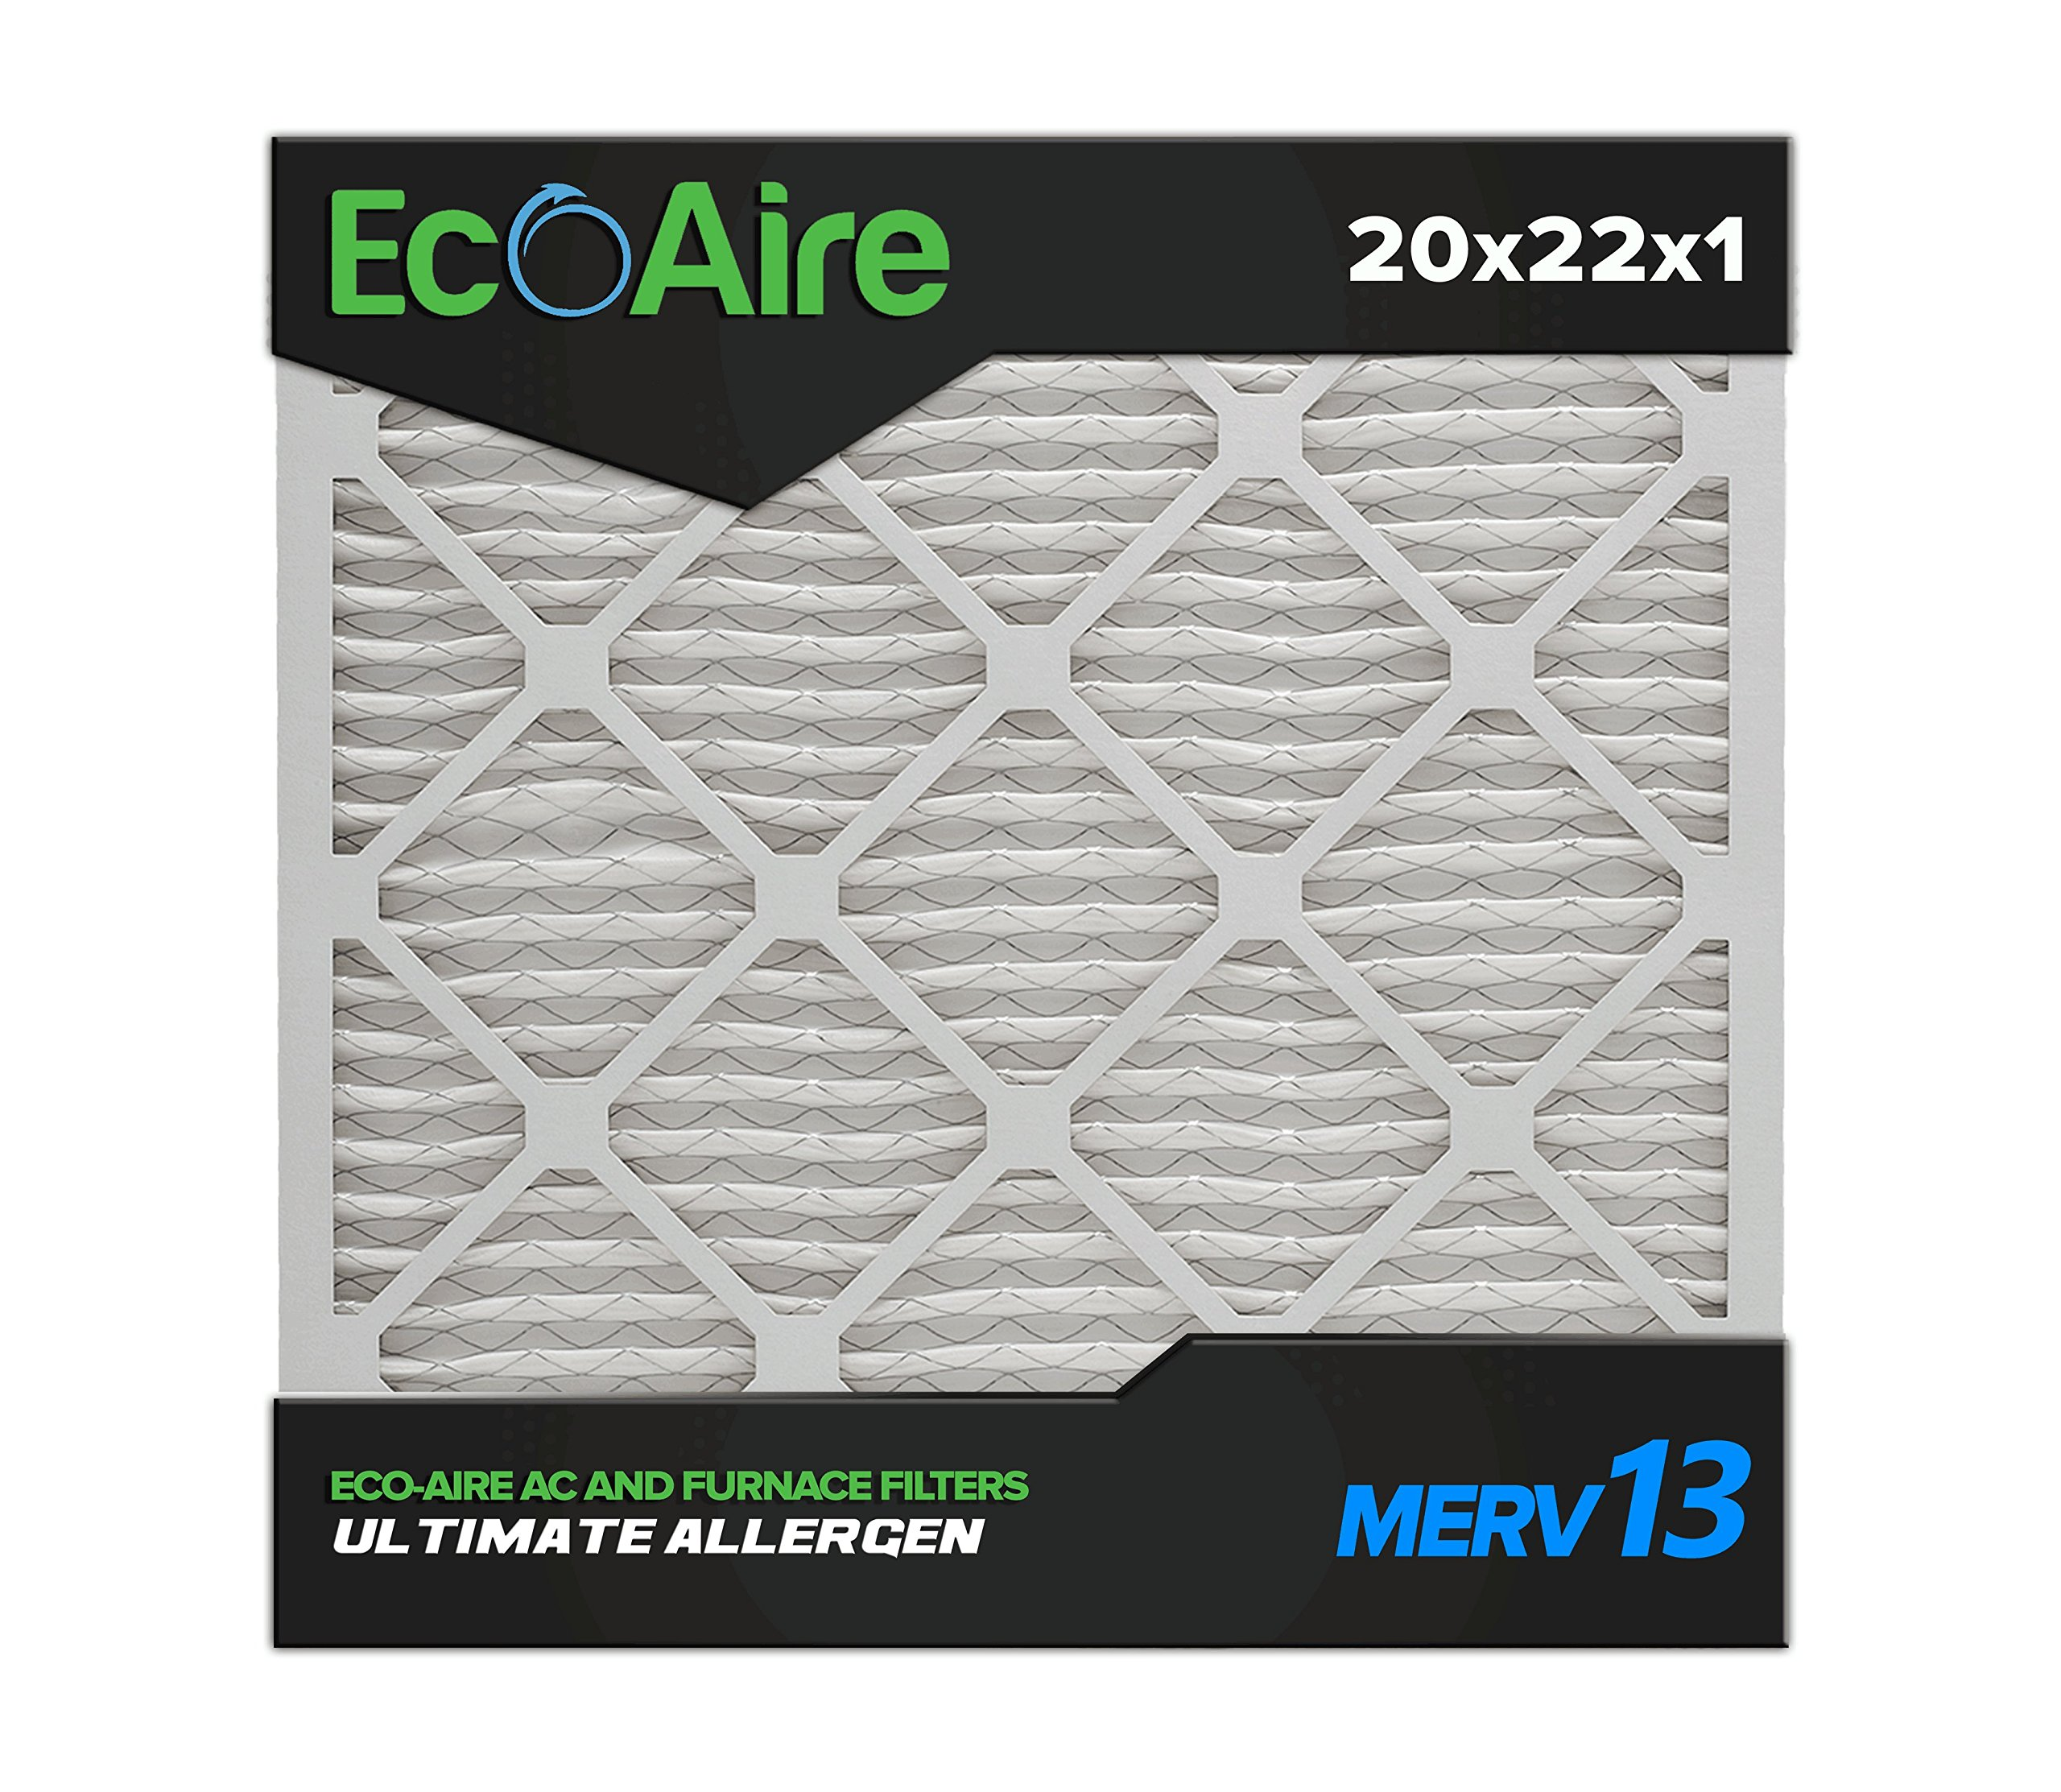 Eco-Aire 20x22x1 MERV 13, Pleated Air Filter, 20x22x1, Box of 6, Made in the USA